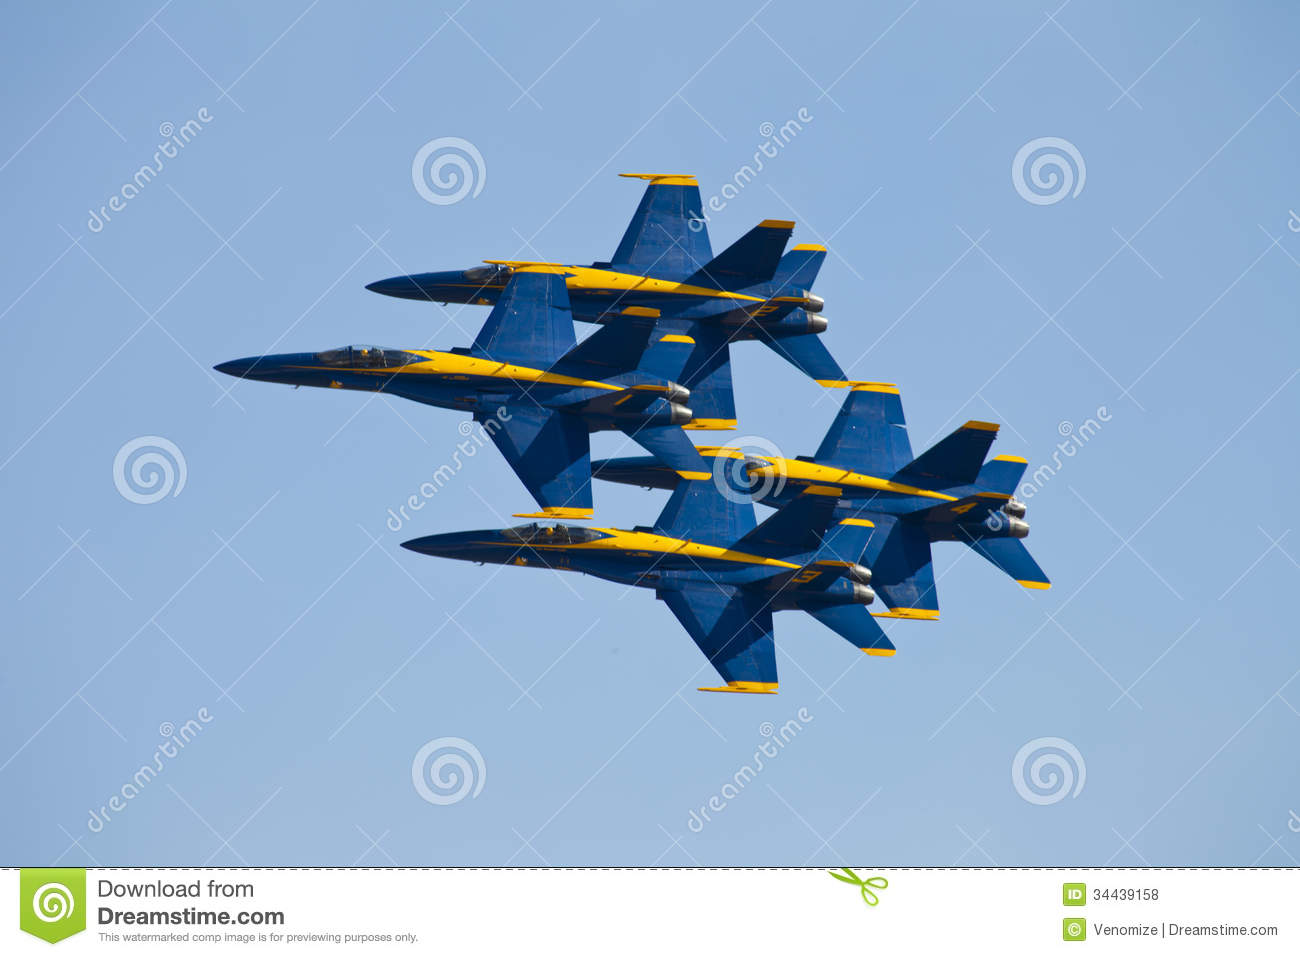 Anjos azuis Airshow